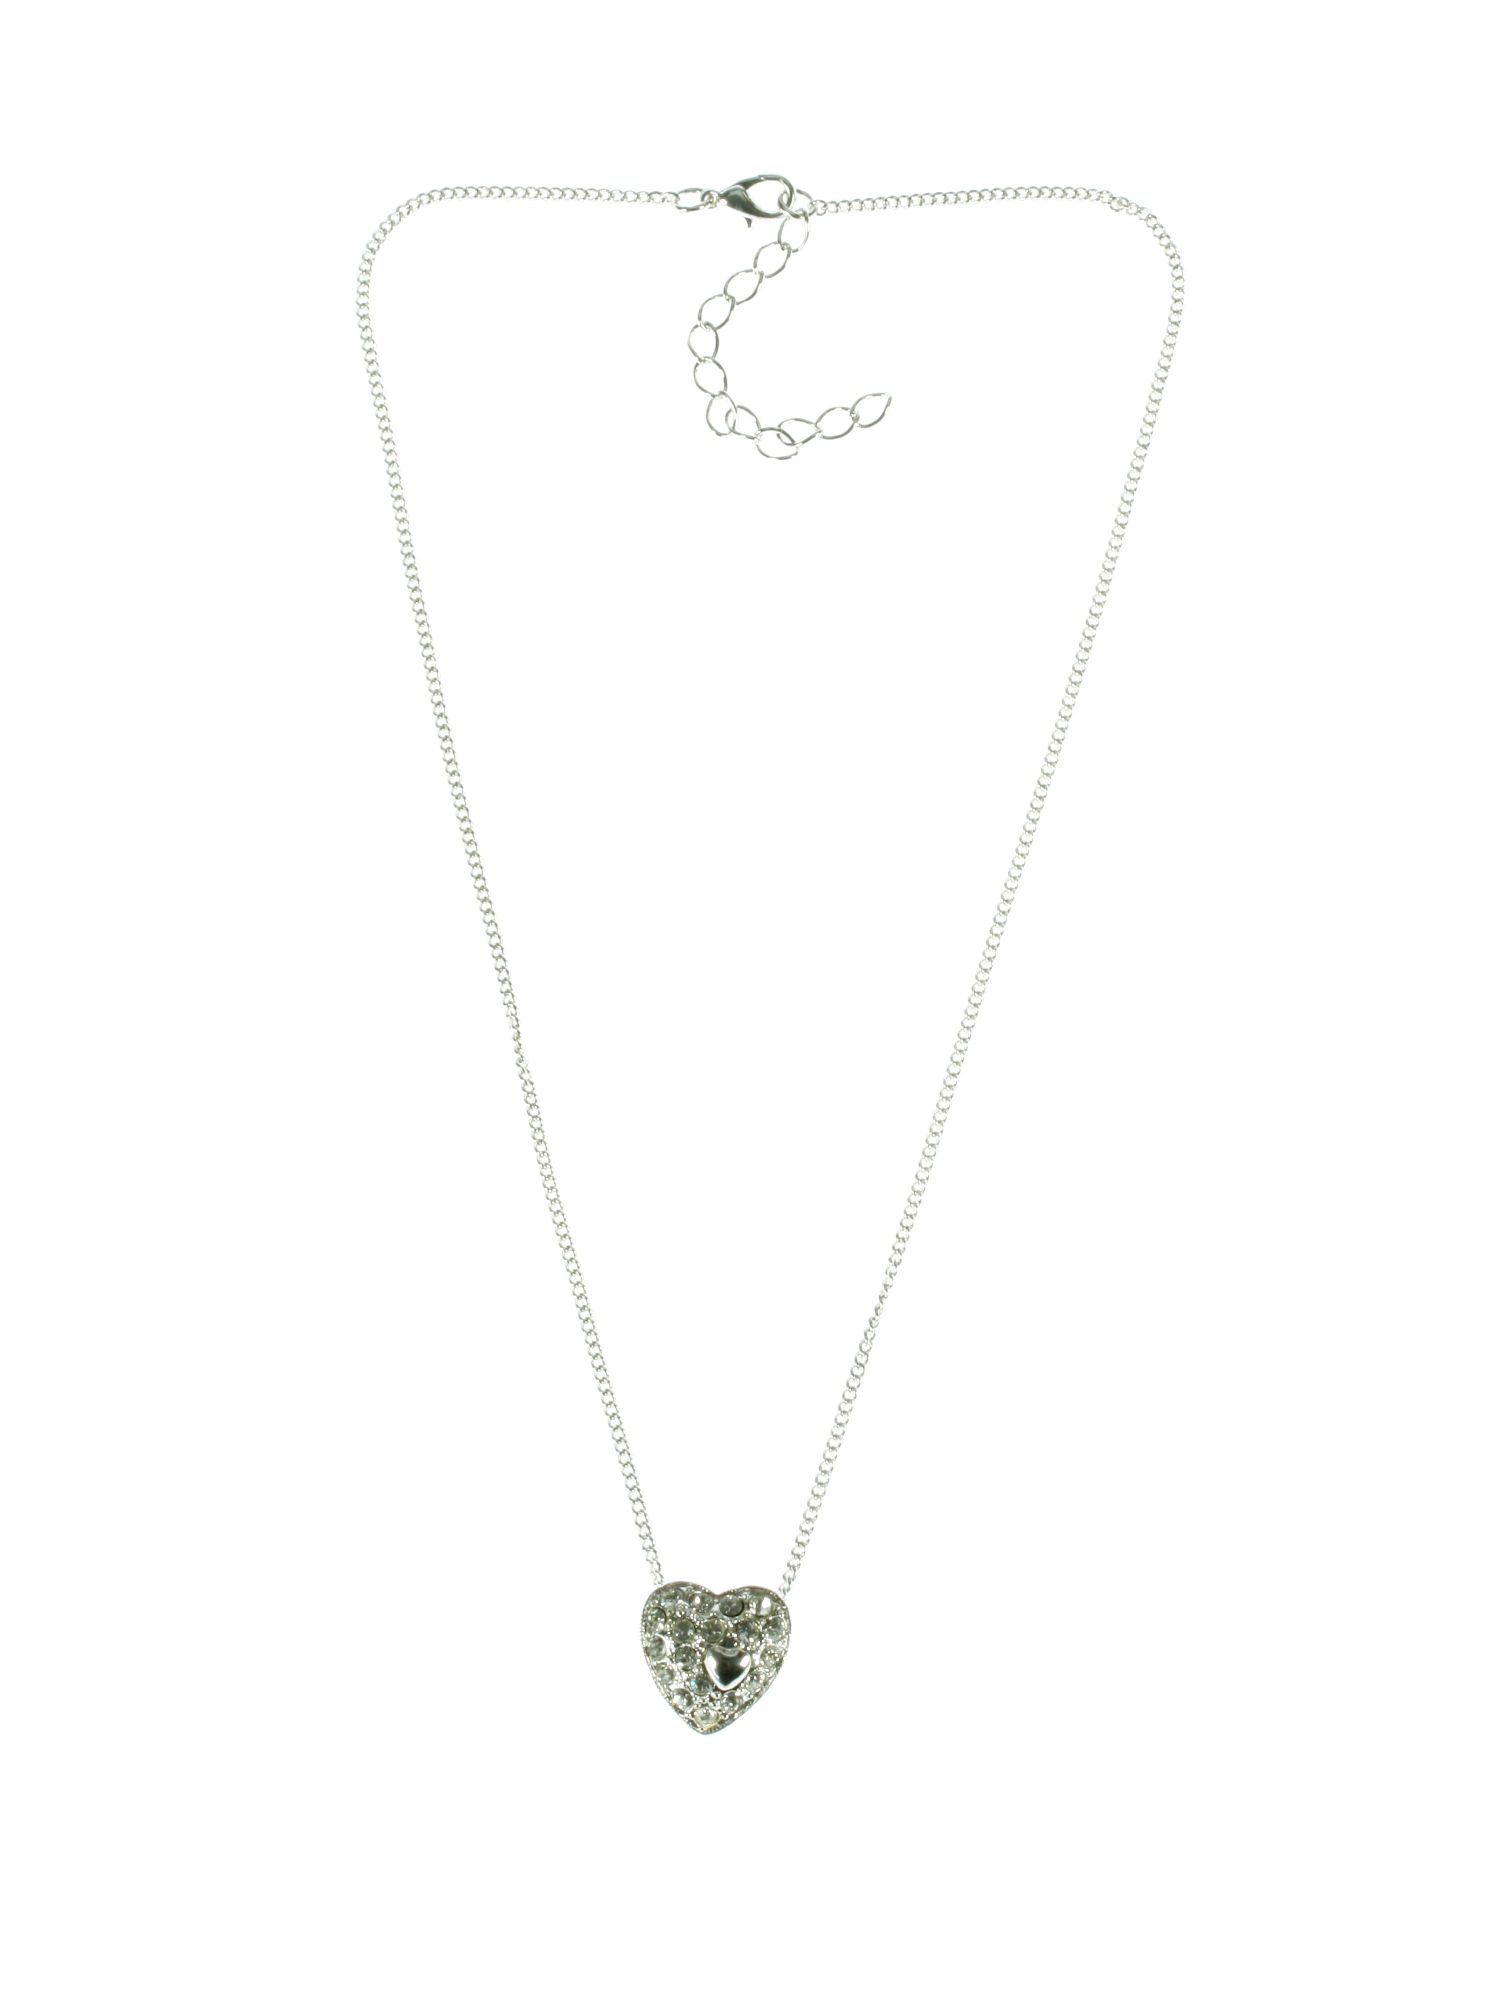 Silver plated clear crystals heart pendant